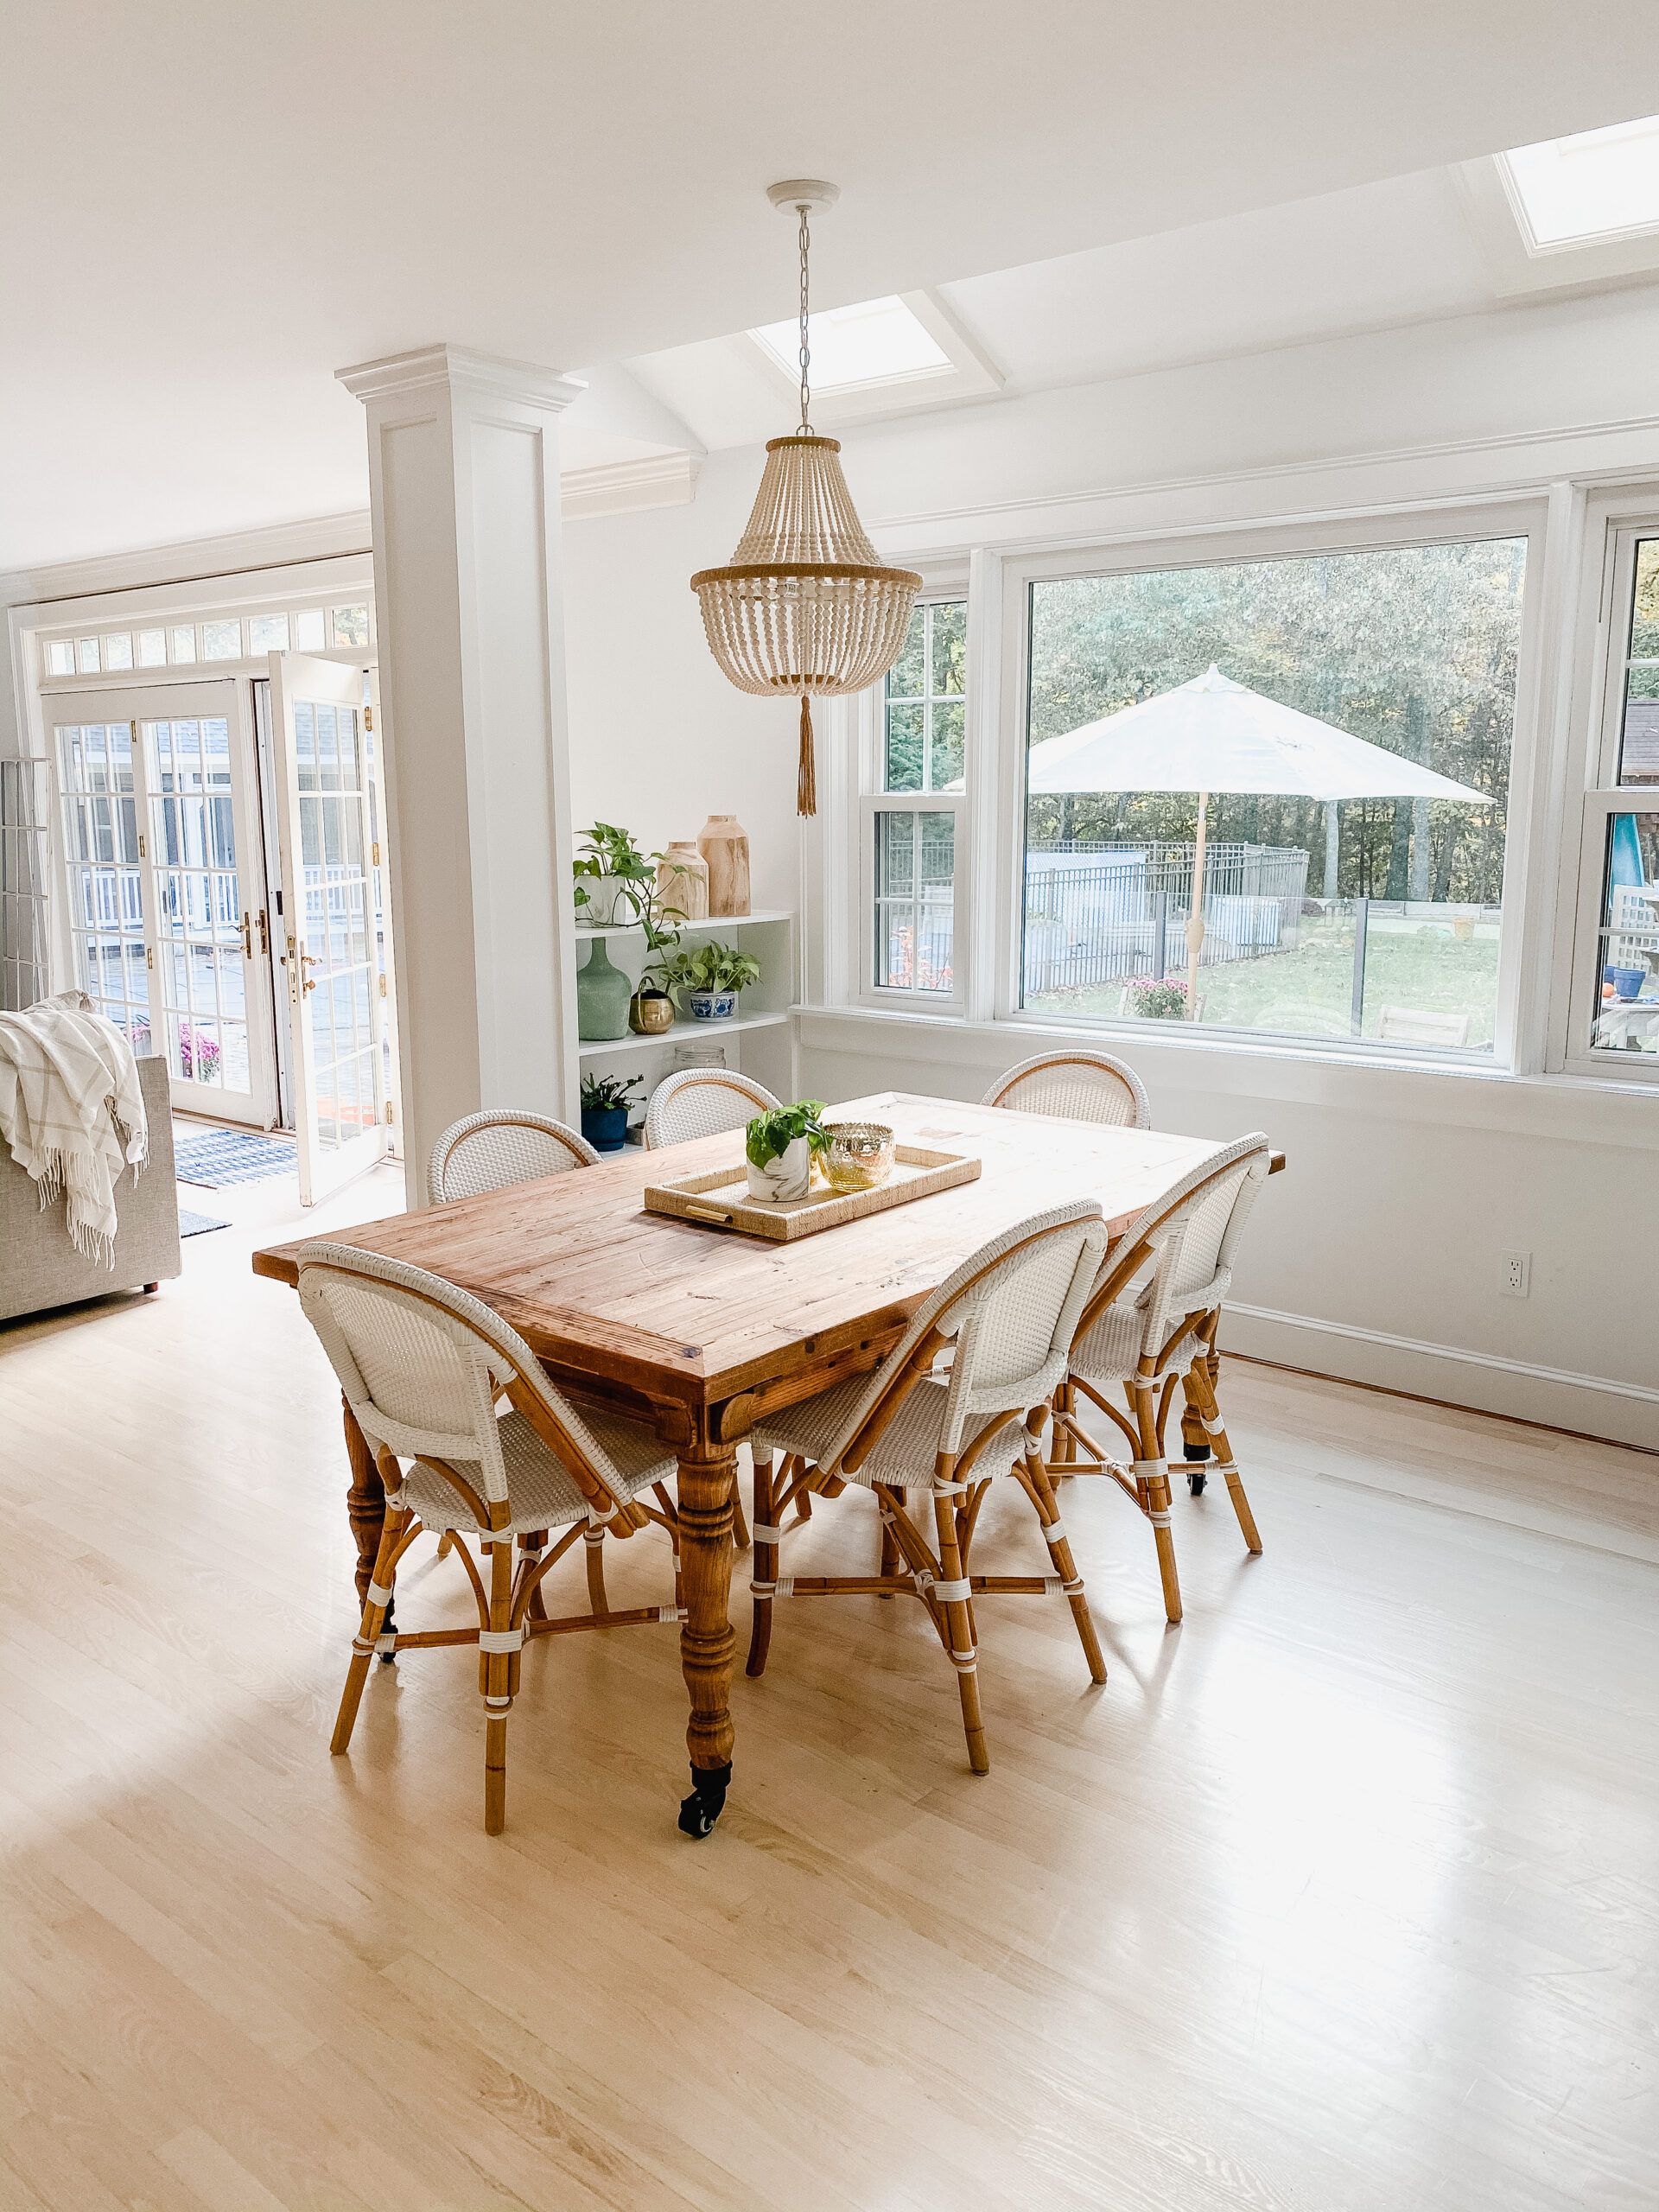 Connecticut life and style blogger Lauren McBride shares the Serena and Lily sale, including items she has in her own home.